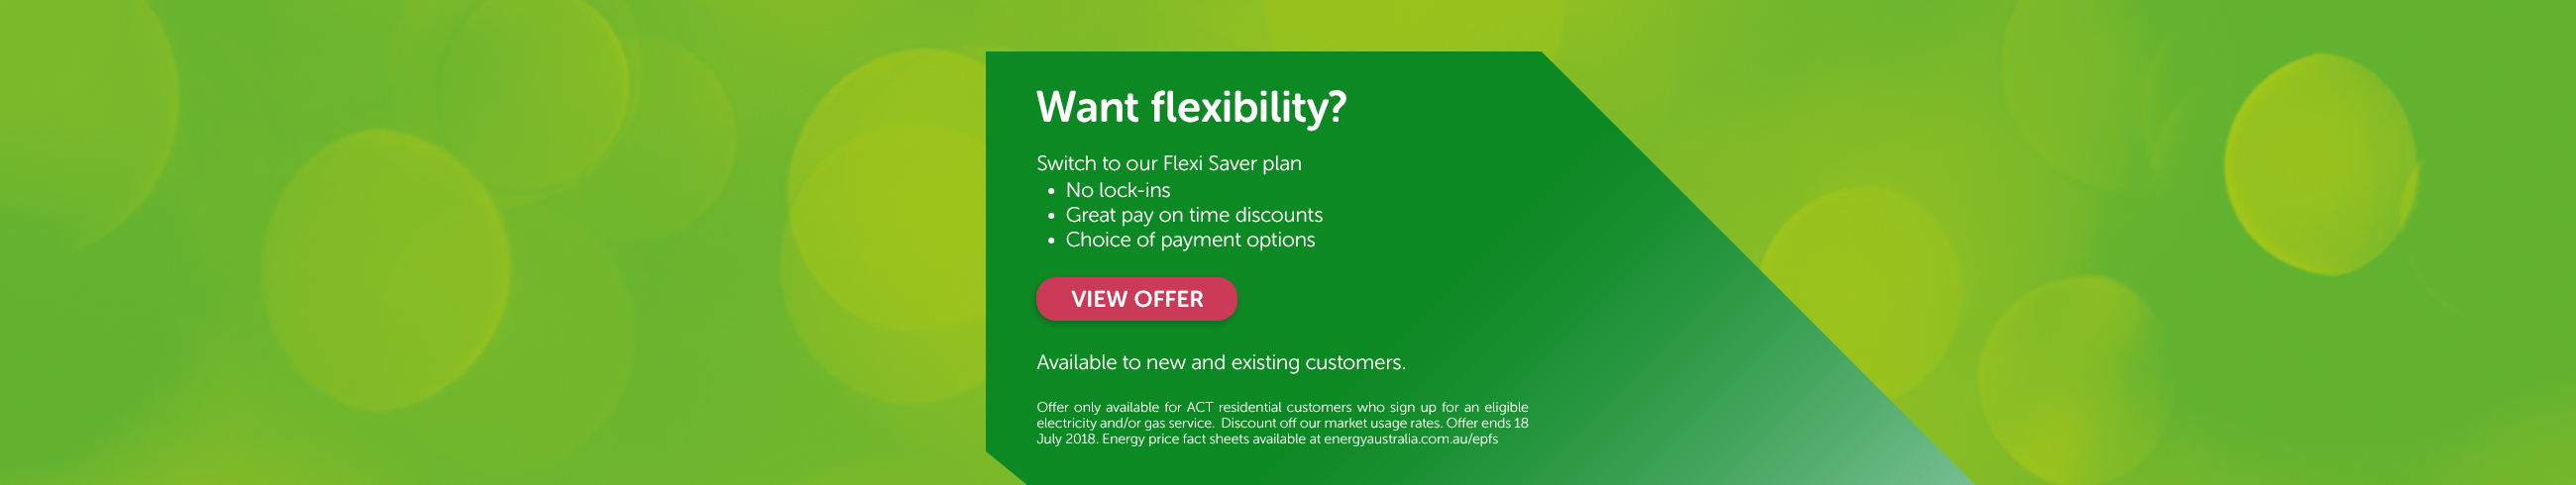 Want flexibility? Switch to our Flexi Saver plan